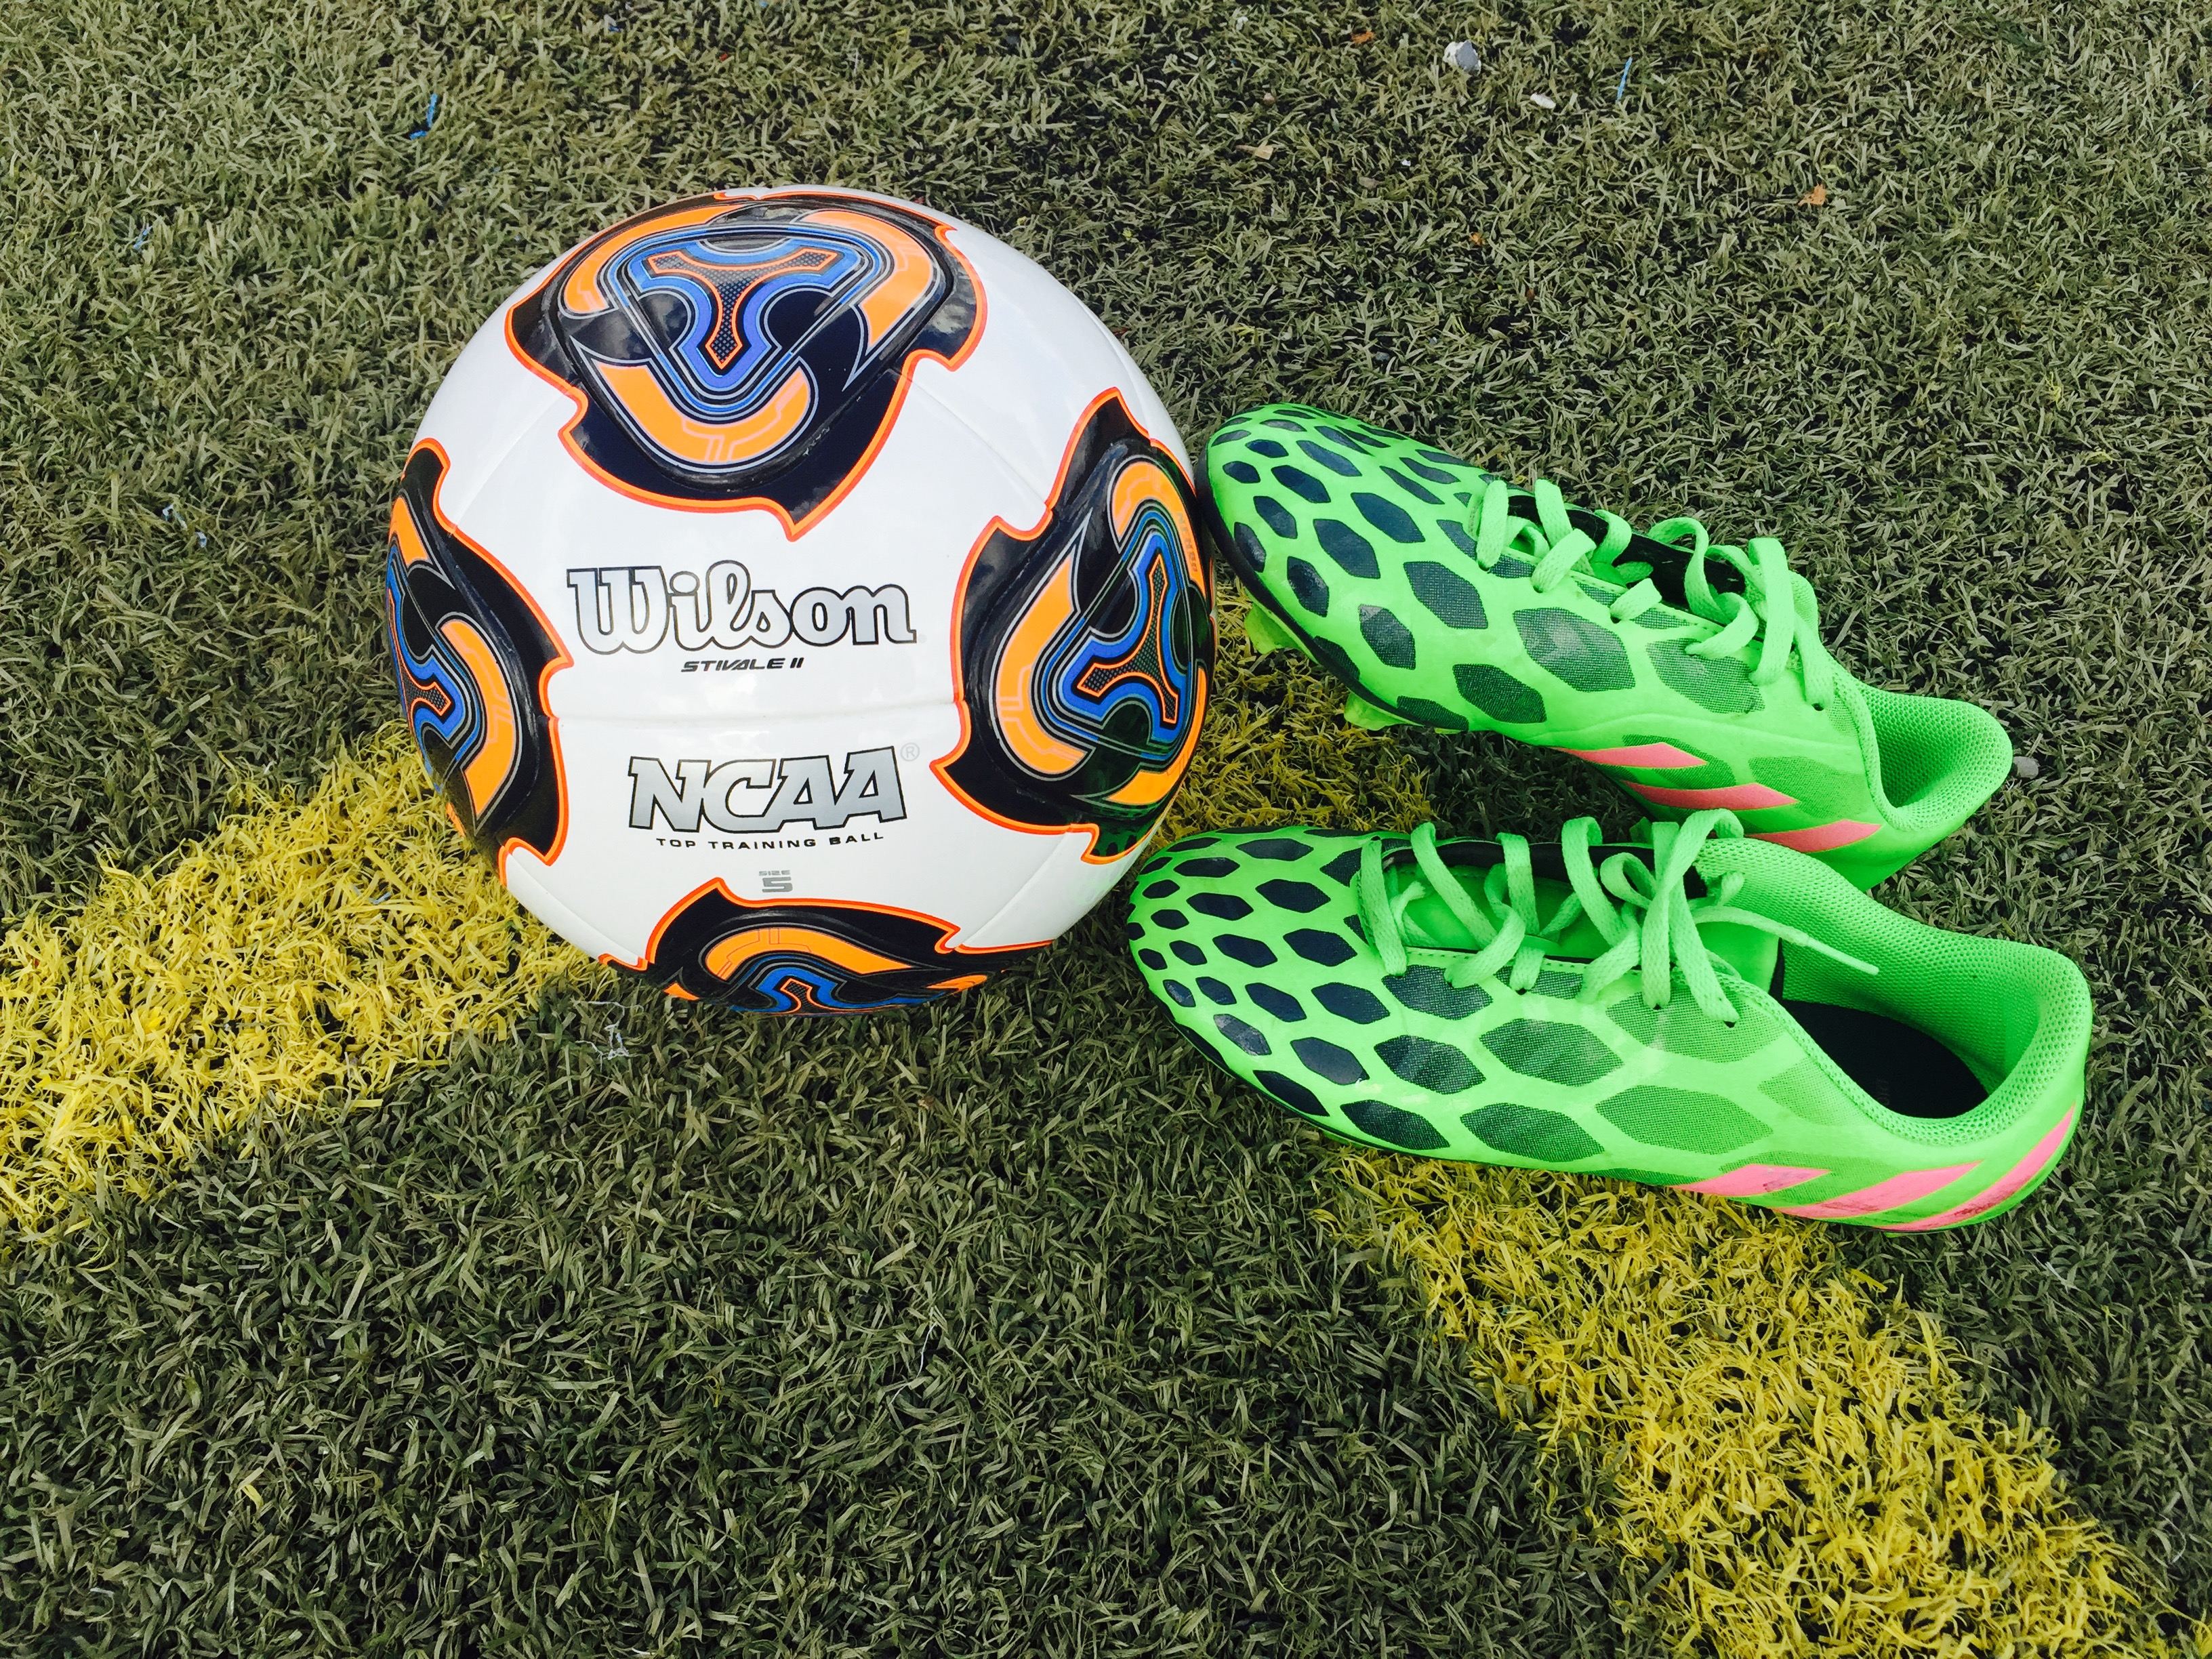 Women's soccer cleats with NCAA soccer ball. Taken by Mia Williams